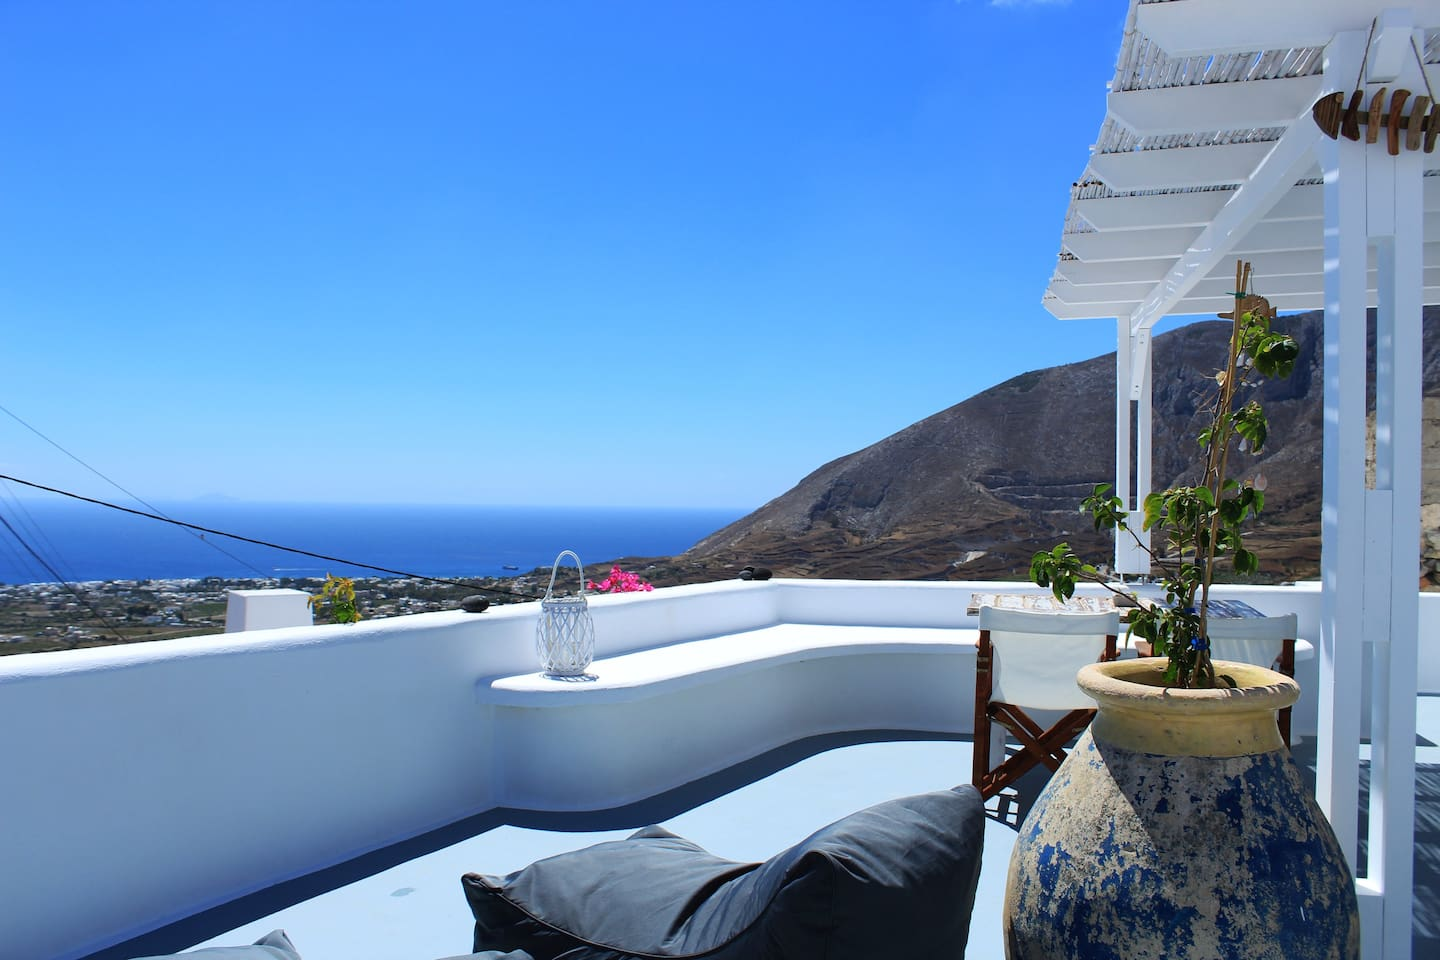 Lodras' House's balcony pending above the Aegean! Breathtaking views of Anafi island (east) and Mesa Vouno (south).